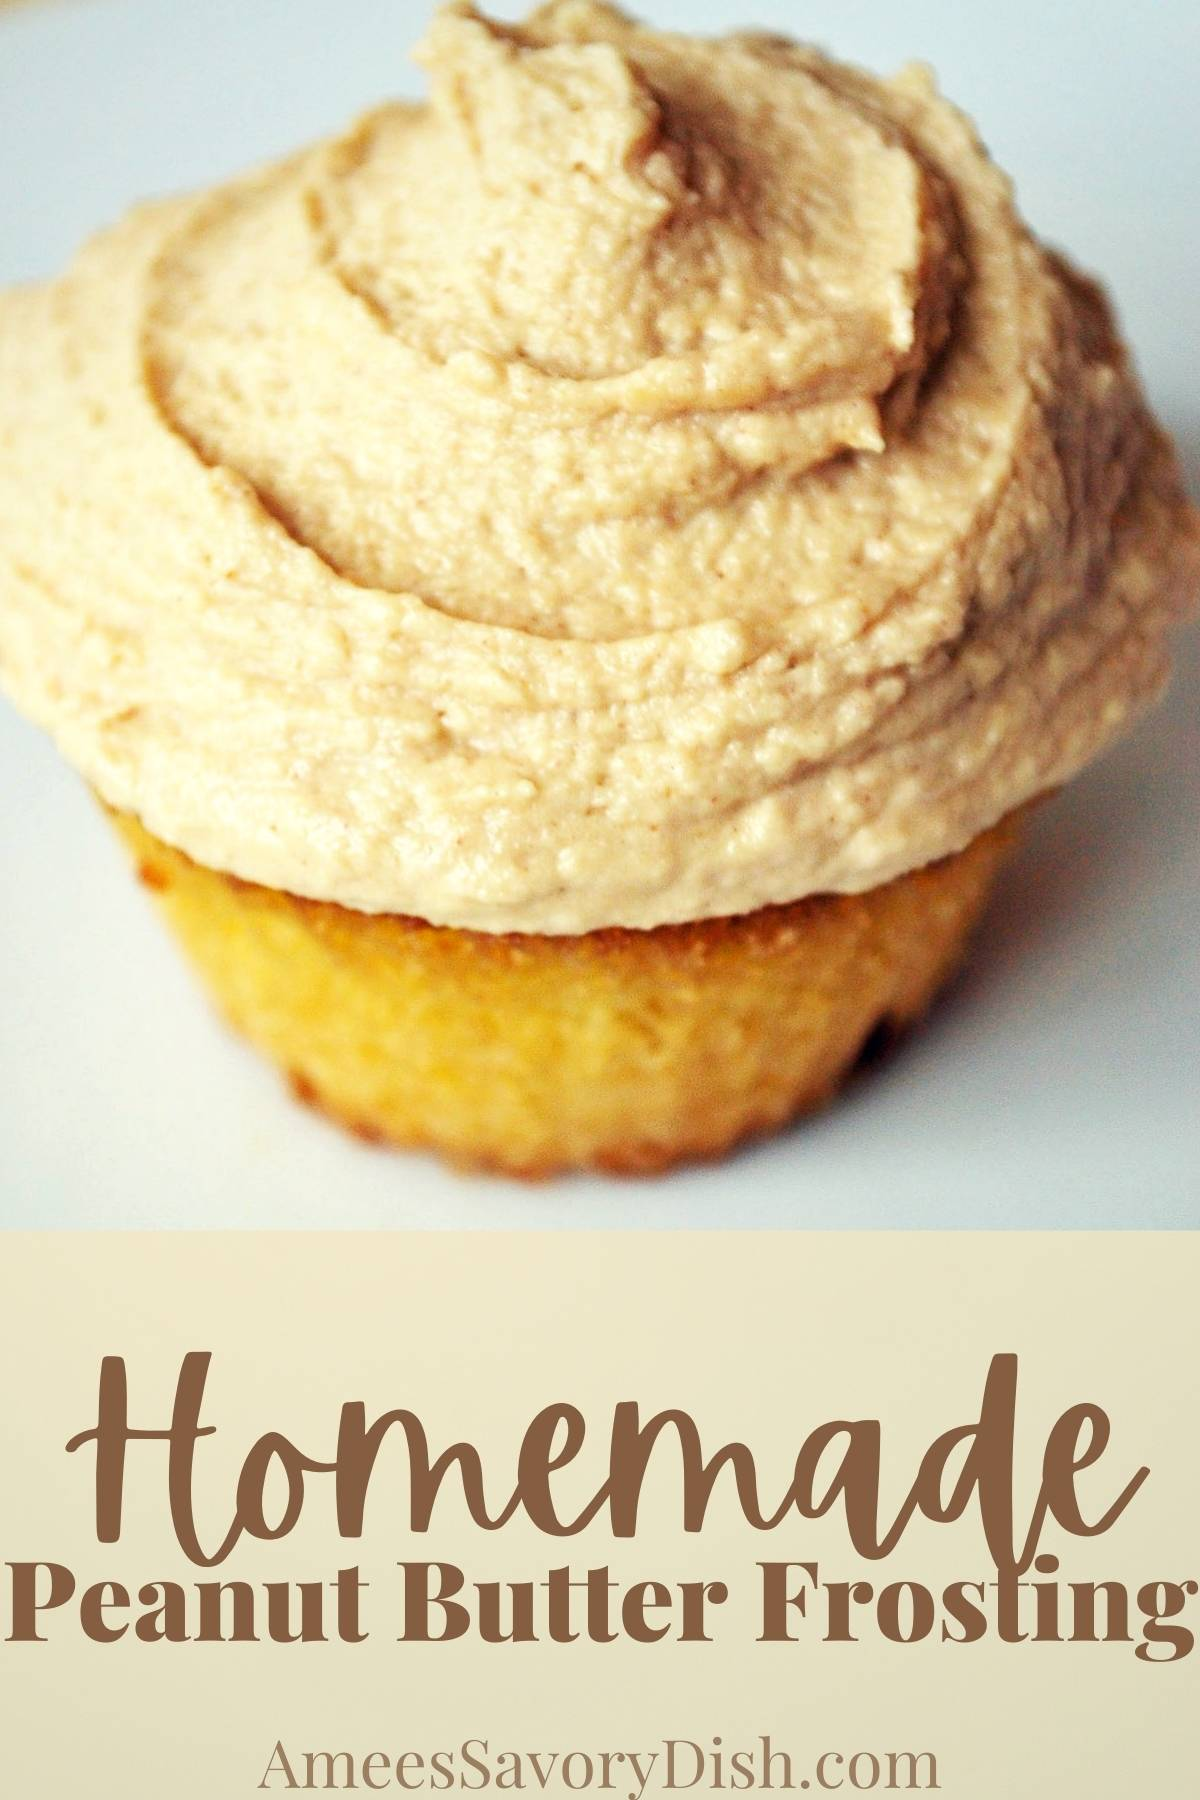 A creamy and delicious recipe for peanut butter frosting made with creamy peanut butter, cream cheese, butter, and powdered sugar. via @Ameessavorydish